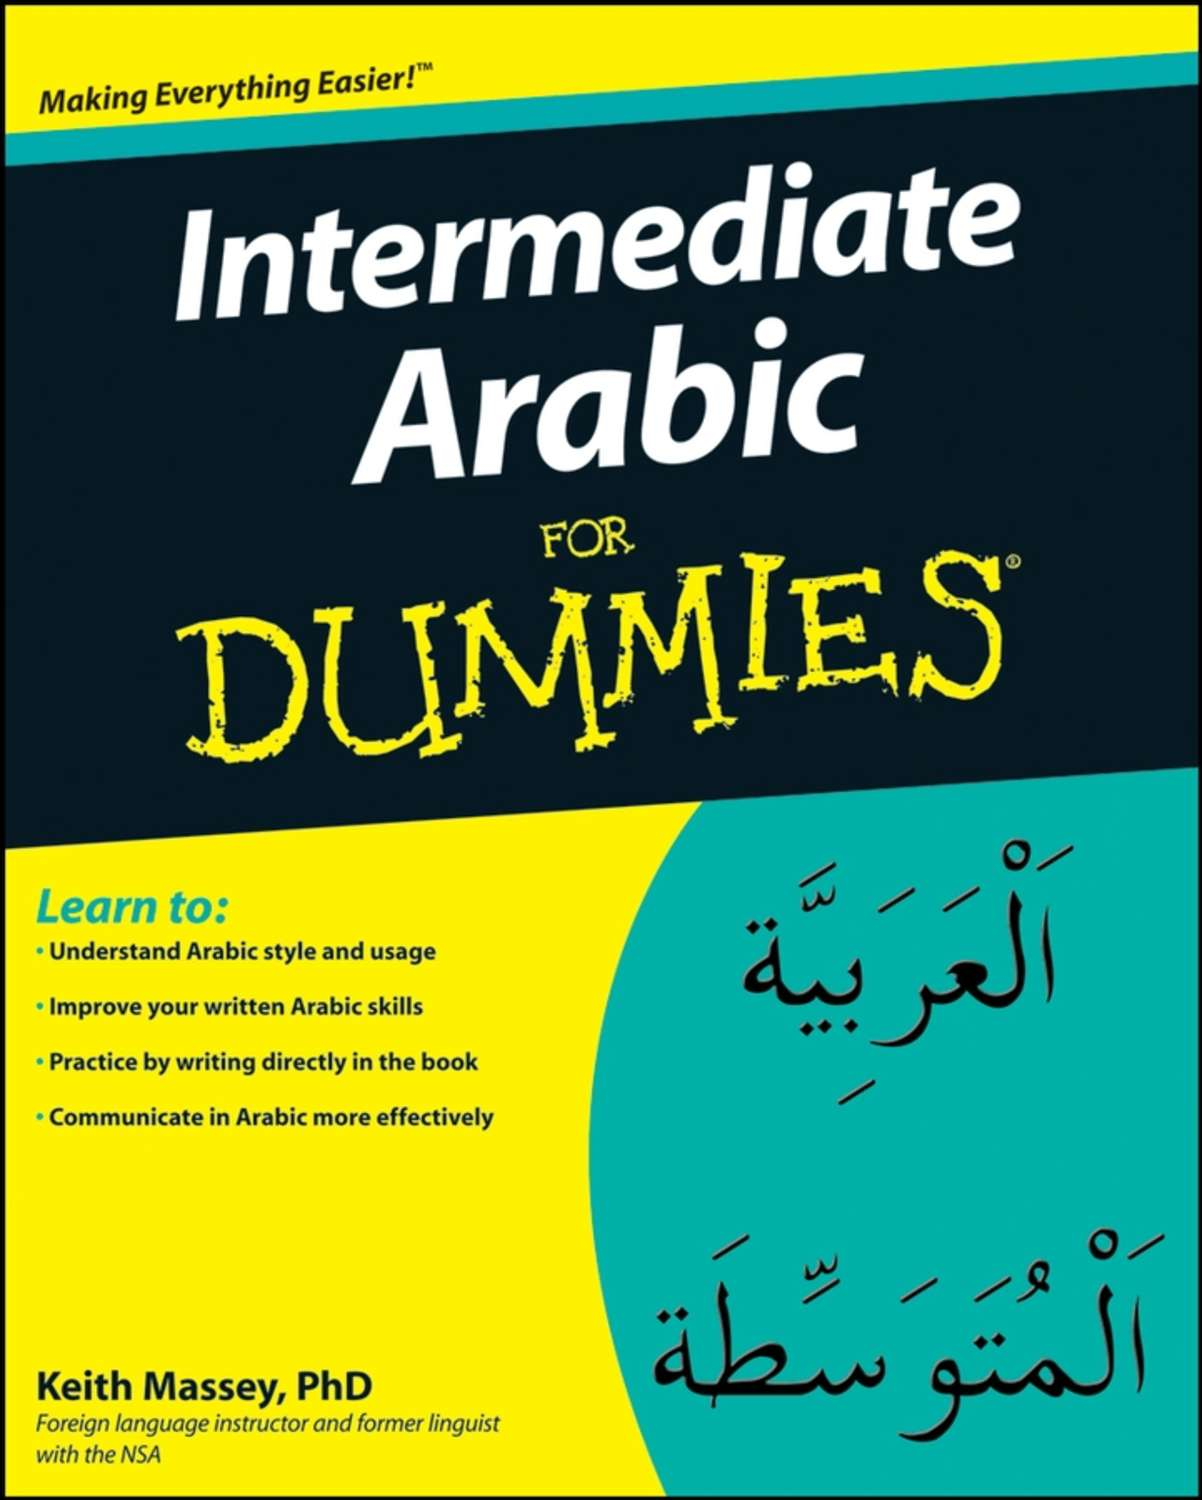 arabic intermediate